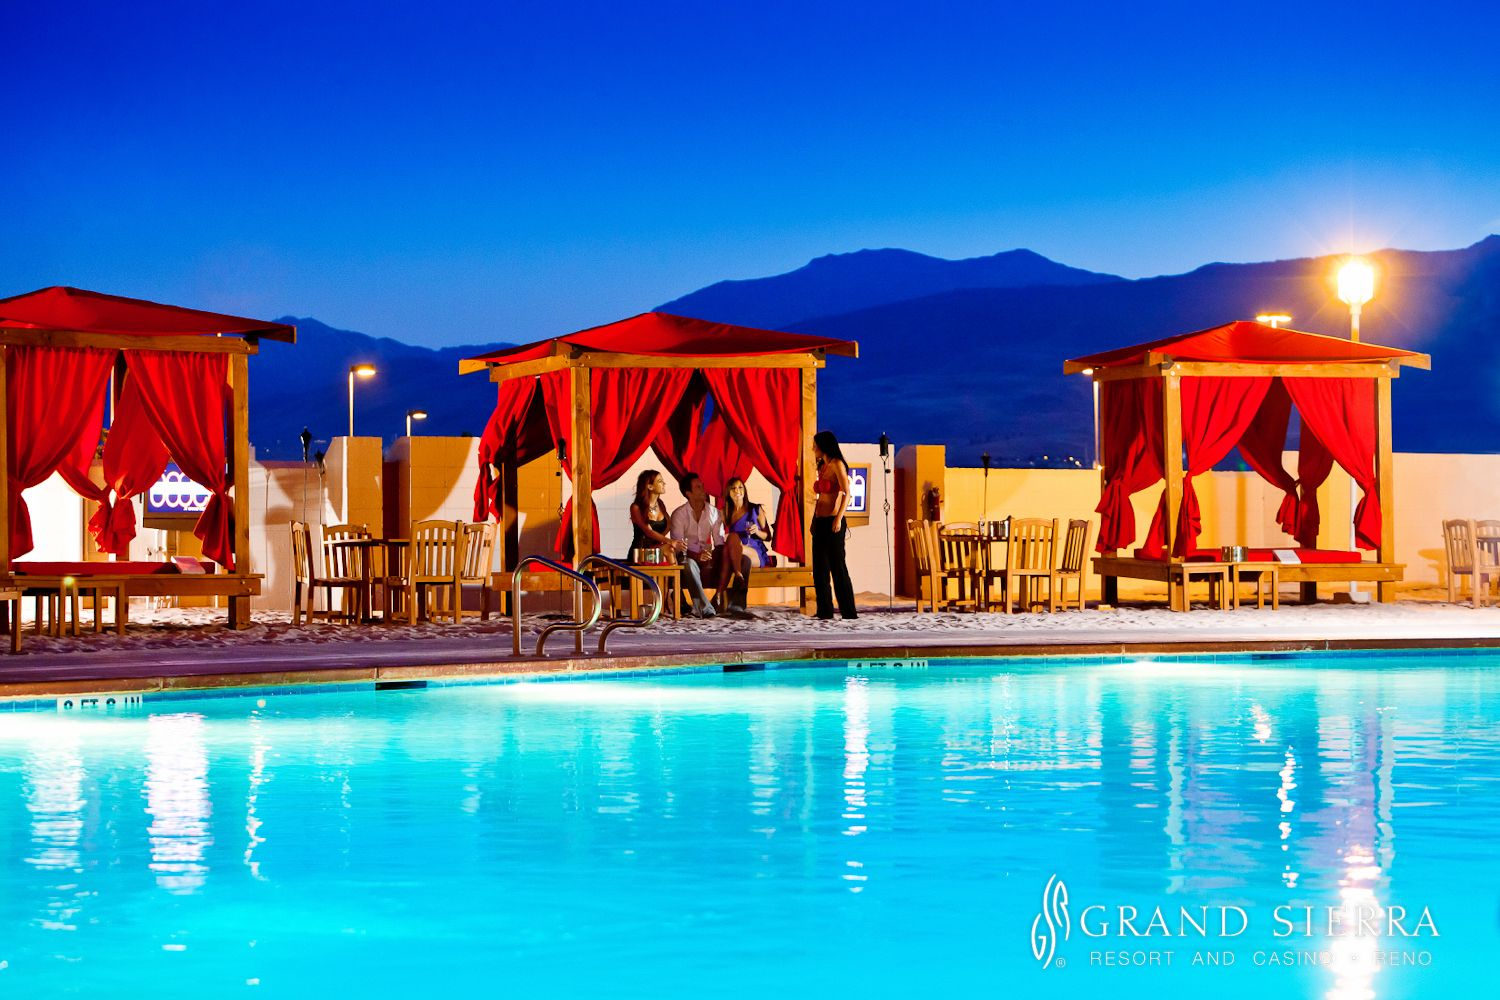 Reopening In May For The Summer The Beach At Our Resort Www